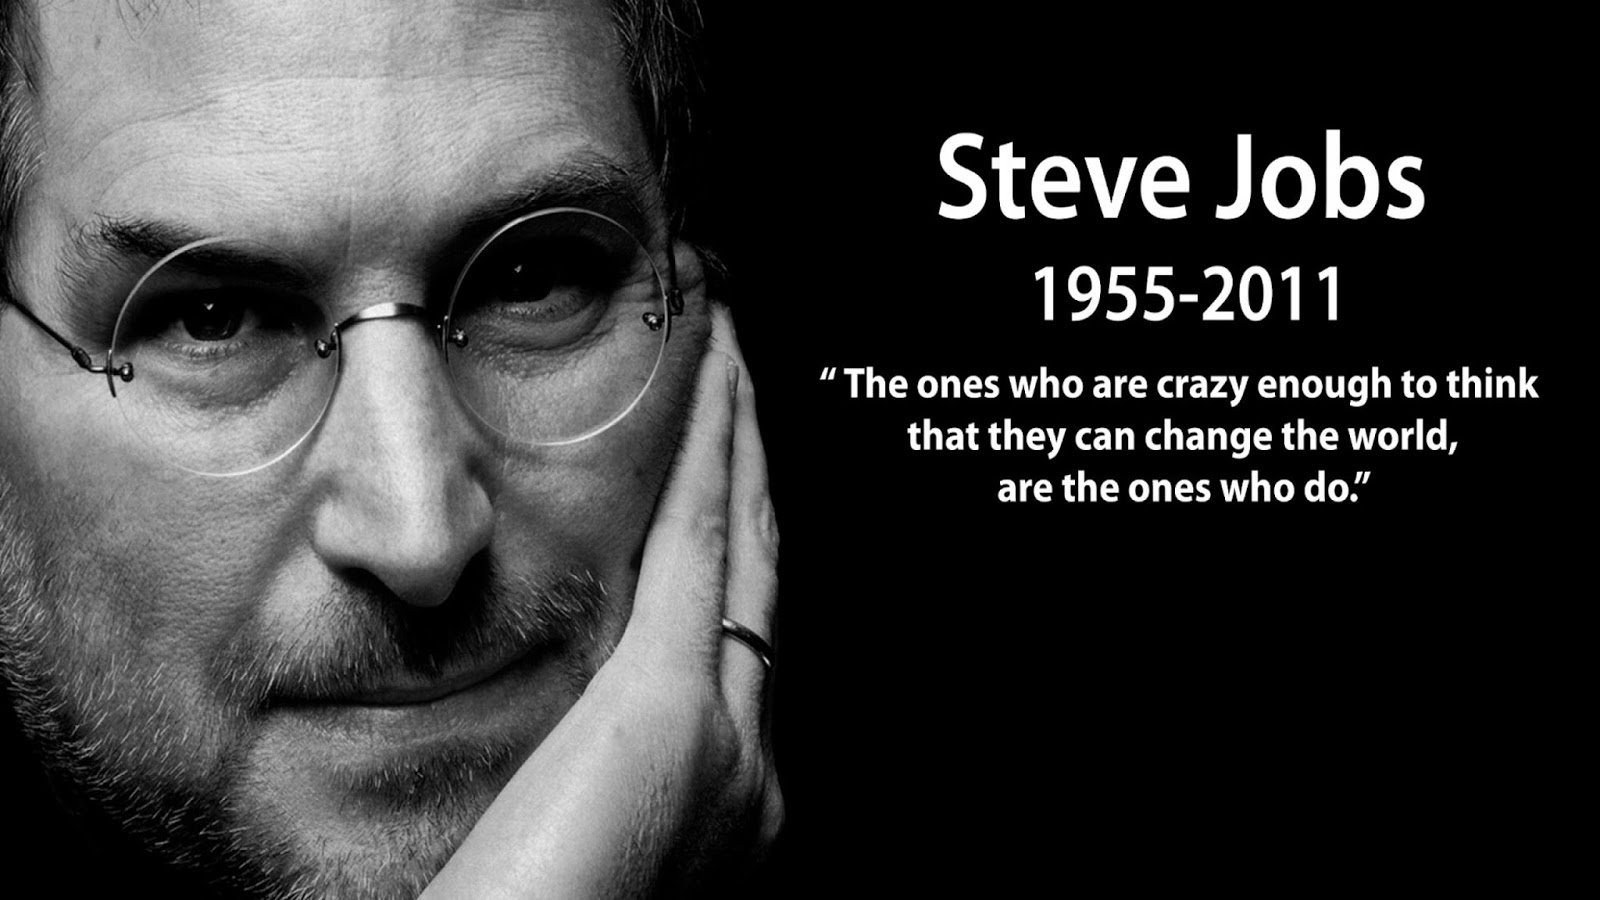 essay on steve jobs life steve jobs biography essay f mana steve jobs steve jobs hubpages steve jobs biography essay f mana steve jobs steve jobs hubpages